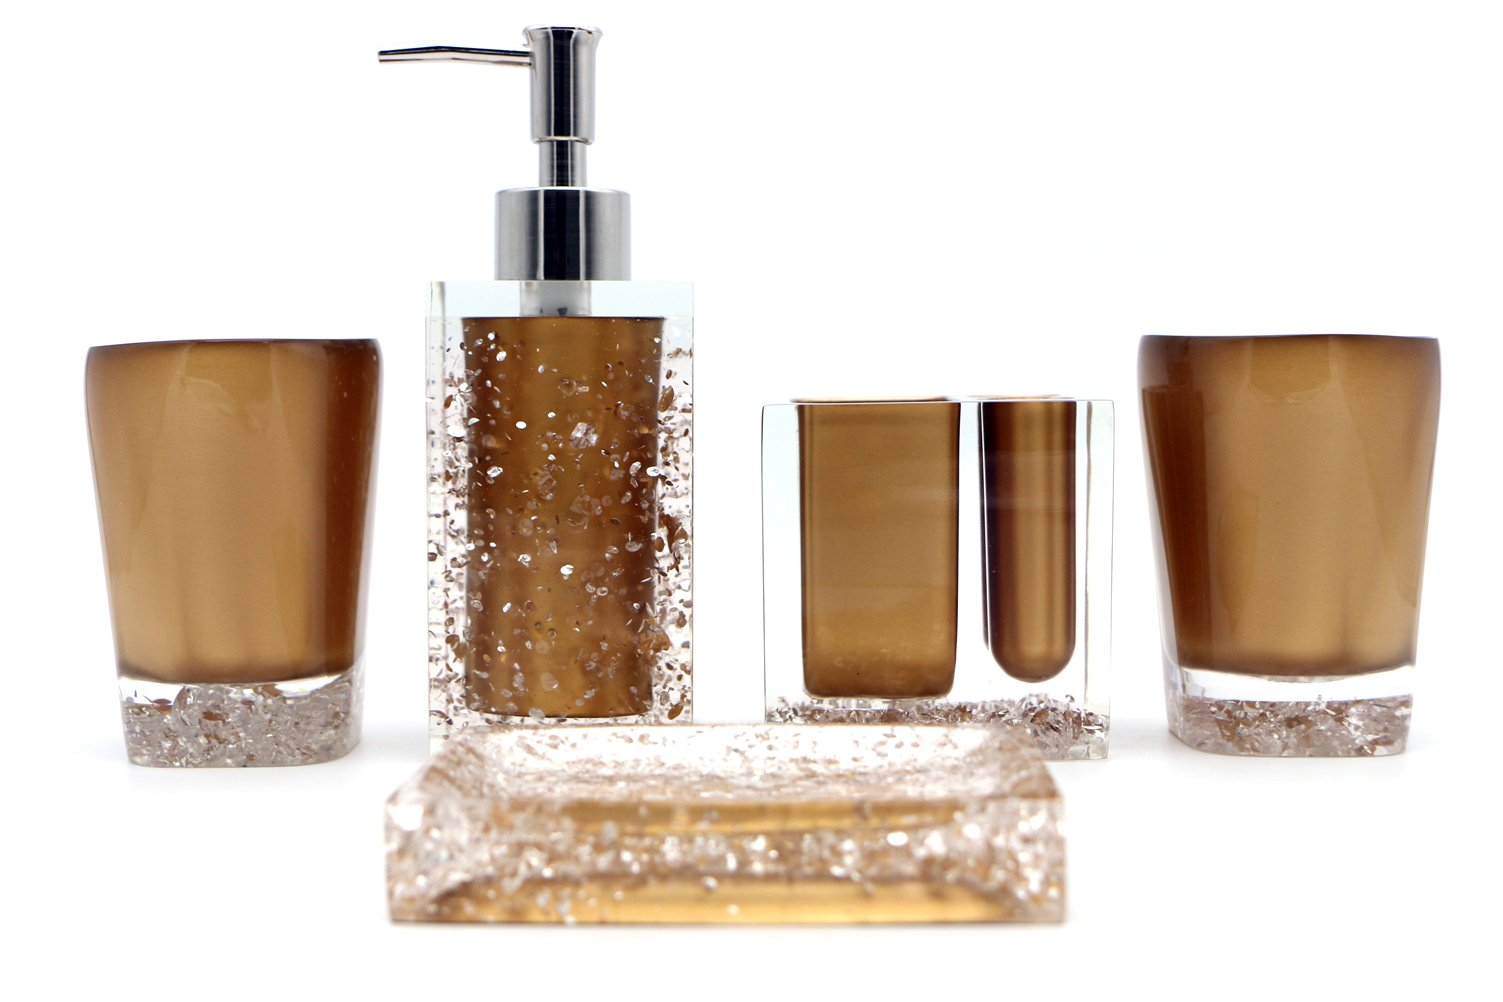 Hot San Resin 5 Pieces Bathroom Accessory Set - Ice Crystal In Gold Design Ensemble,Bathroom Vanities,Home Decor - Handmade items,made of resin material,easy to clean and durable Available in multiple colors to match your bathroom's color Includes 2x tumblers;soap dish;liquid soap dispenser;toothbrush holder - bathroom-accessory-sets, bathroom-accessories, bathroom - 71II5XDaYZL -